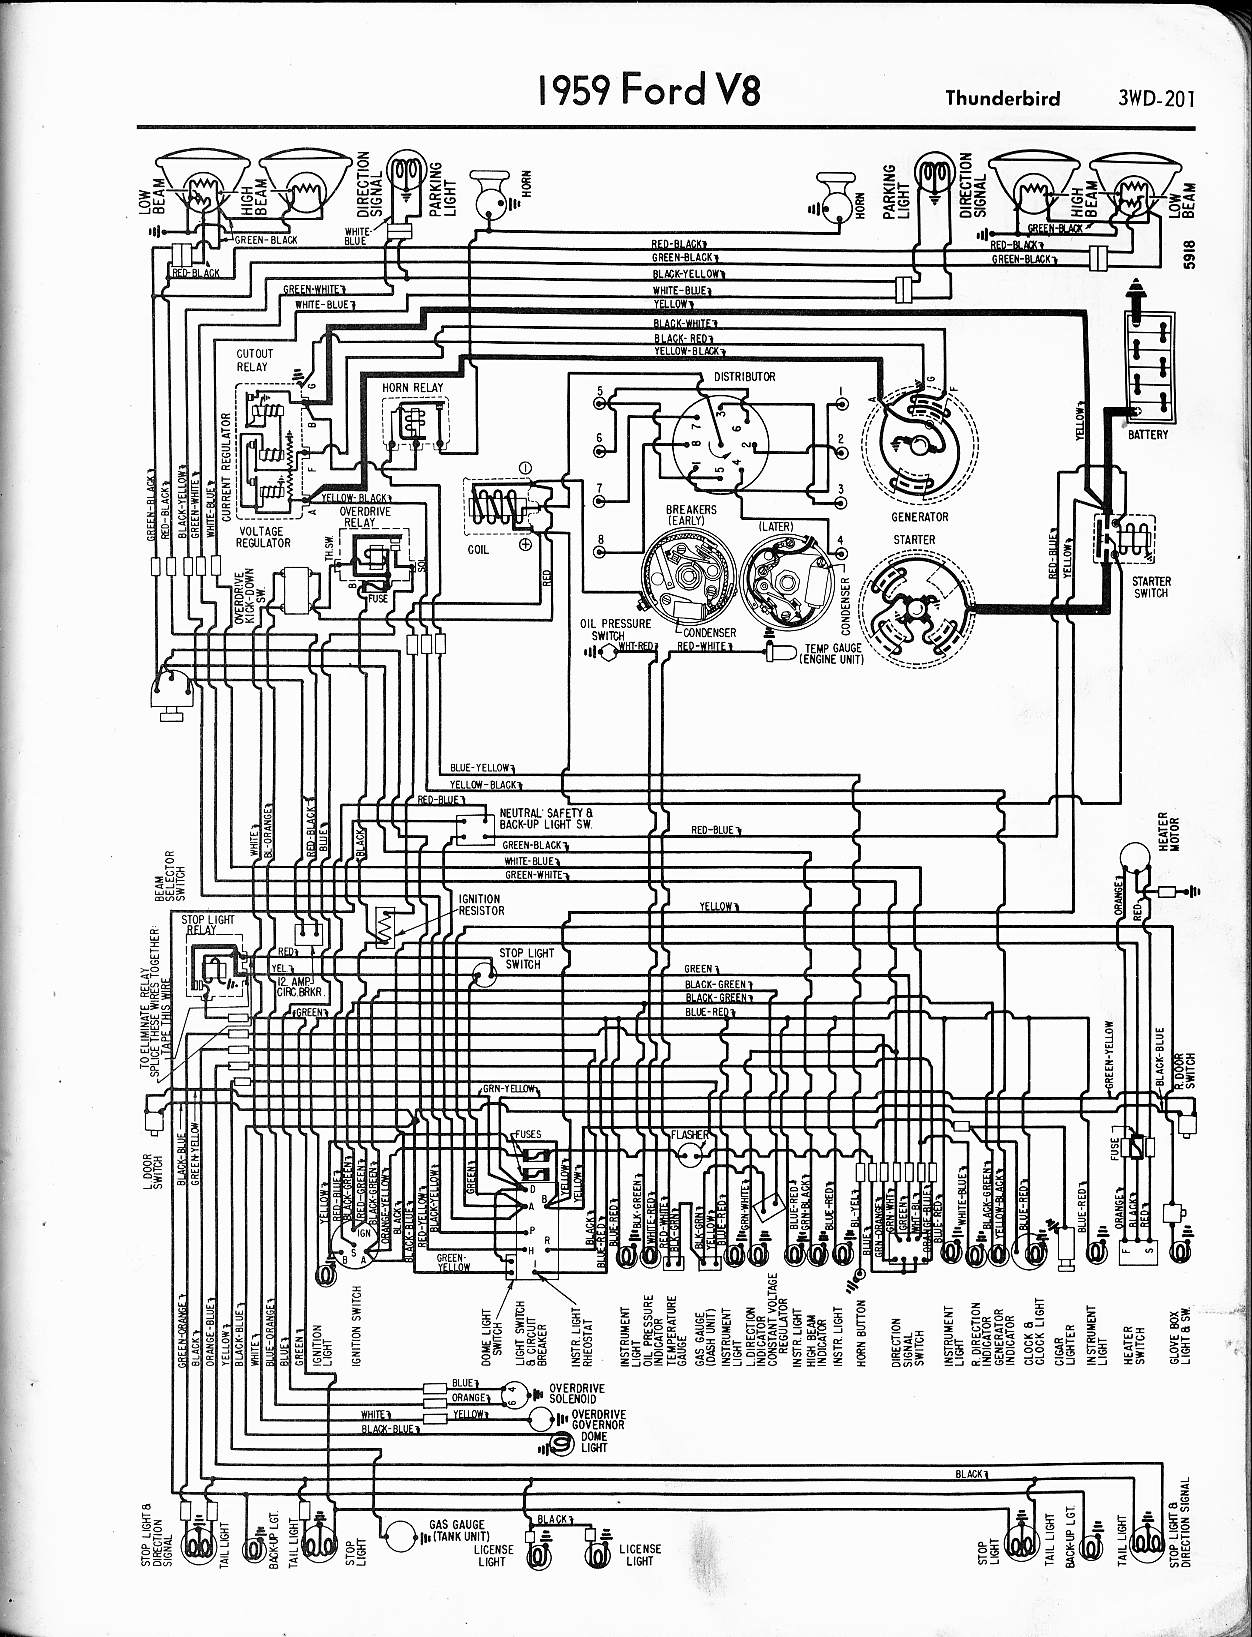 1960 ford truck wiring diagram circuit diagram symbols u2022 rh armkandy co